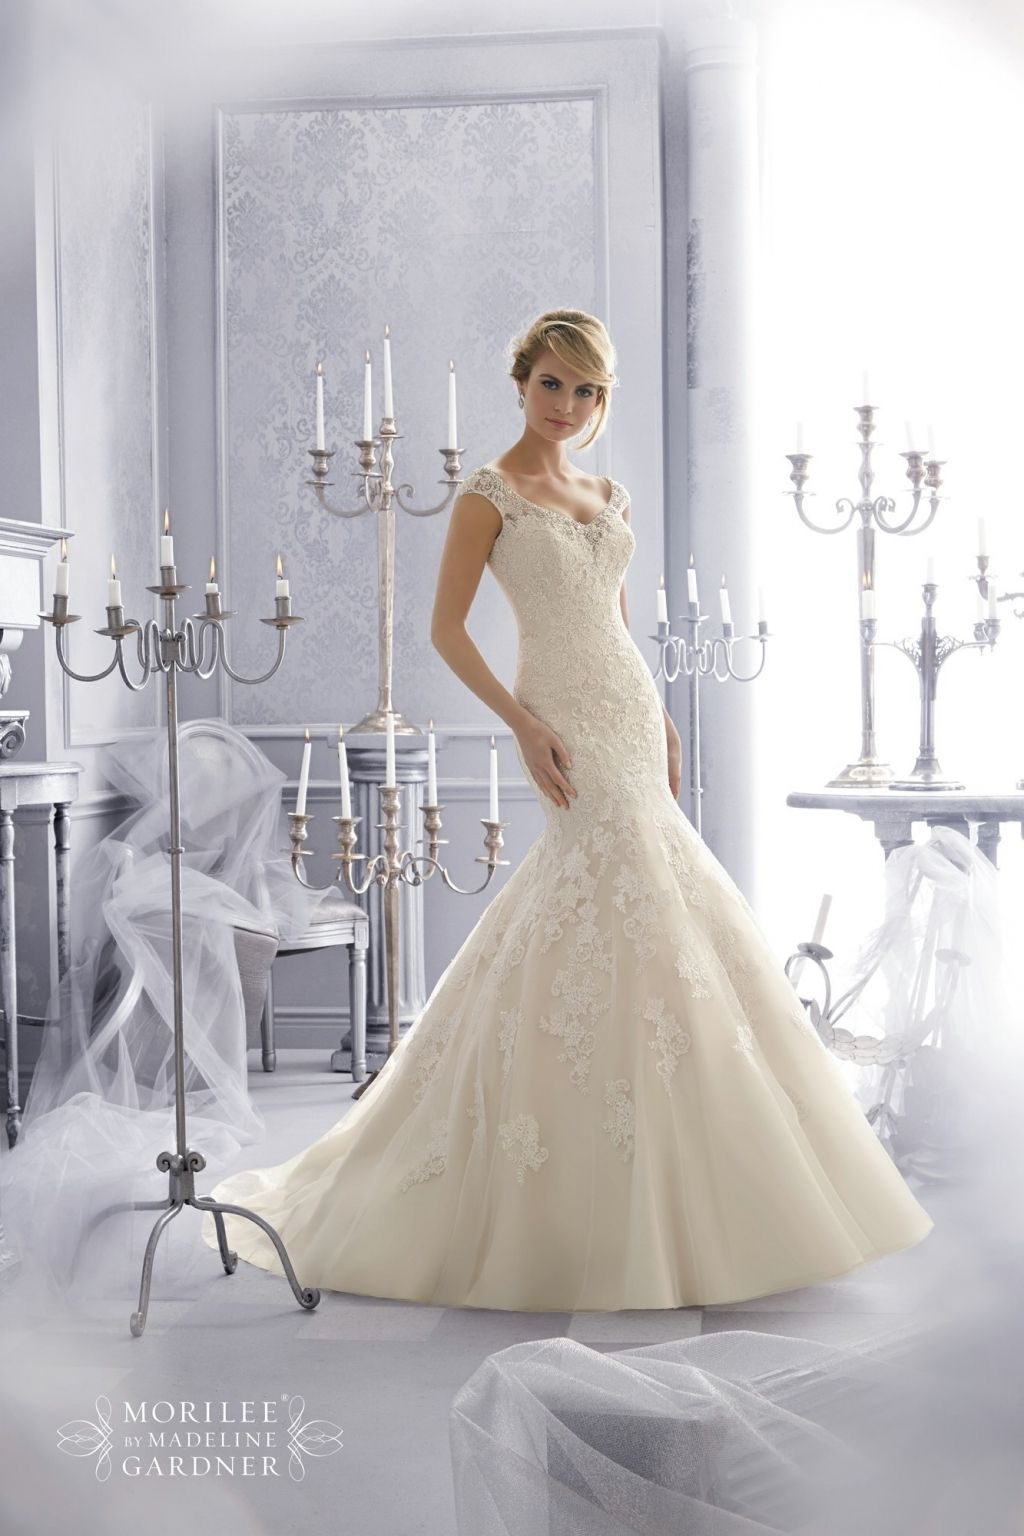 Mori Lee Wedding Gown Prices | Wedding gowns, Gowns and Dresses